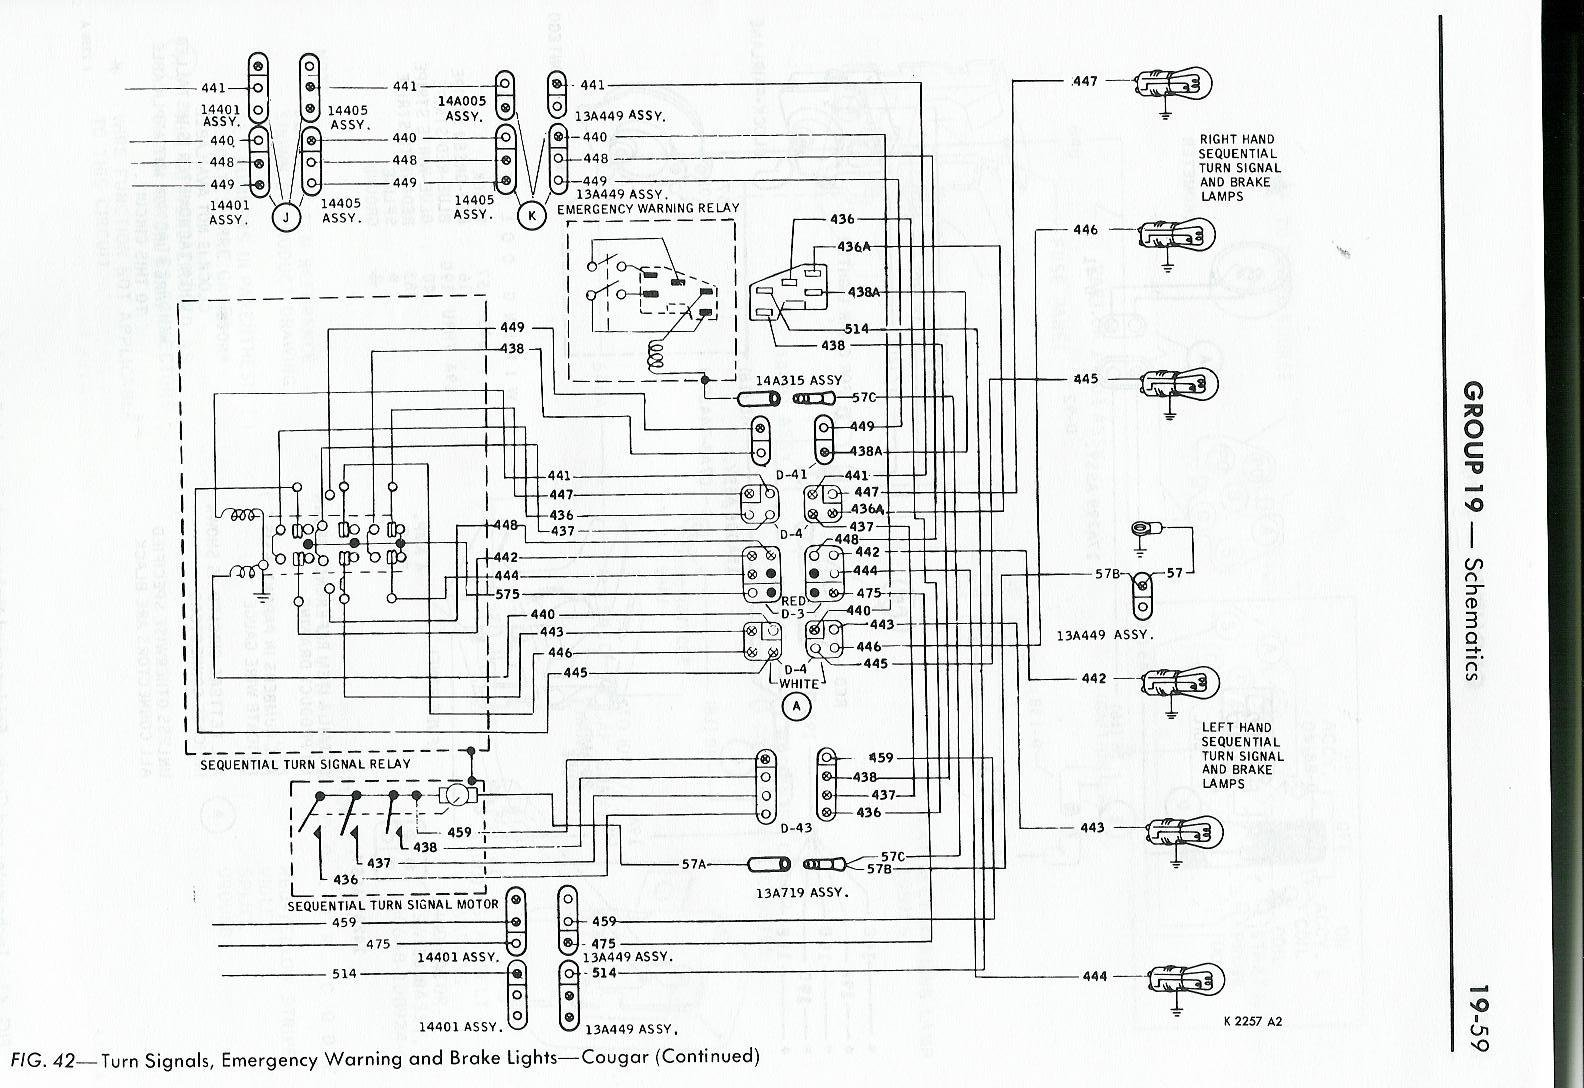 wire diagram 1968 cougar schematics wiring diagrams u2022 rh seniorlivinguniversity co 1969 Mustang Wiring Diagram 1969 Ford Mustang Wiring Diagram